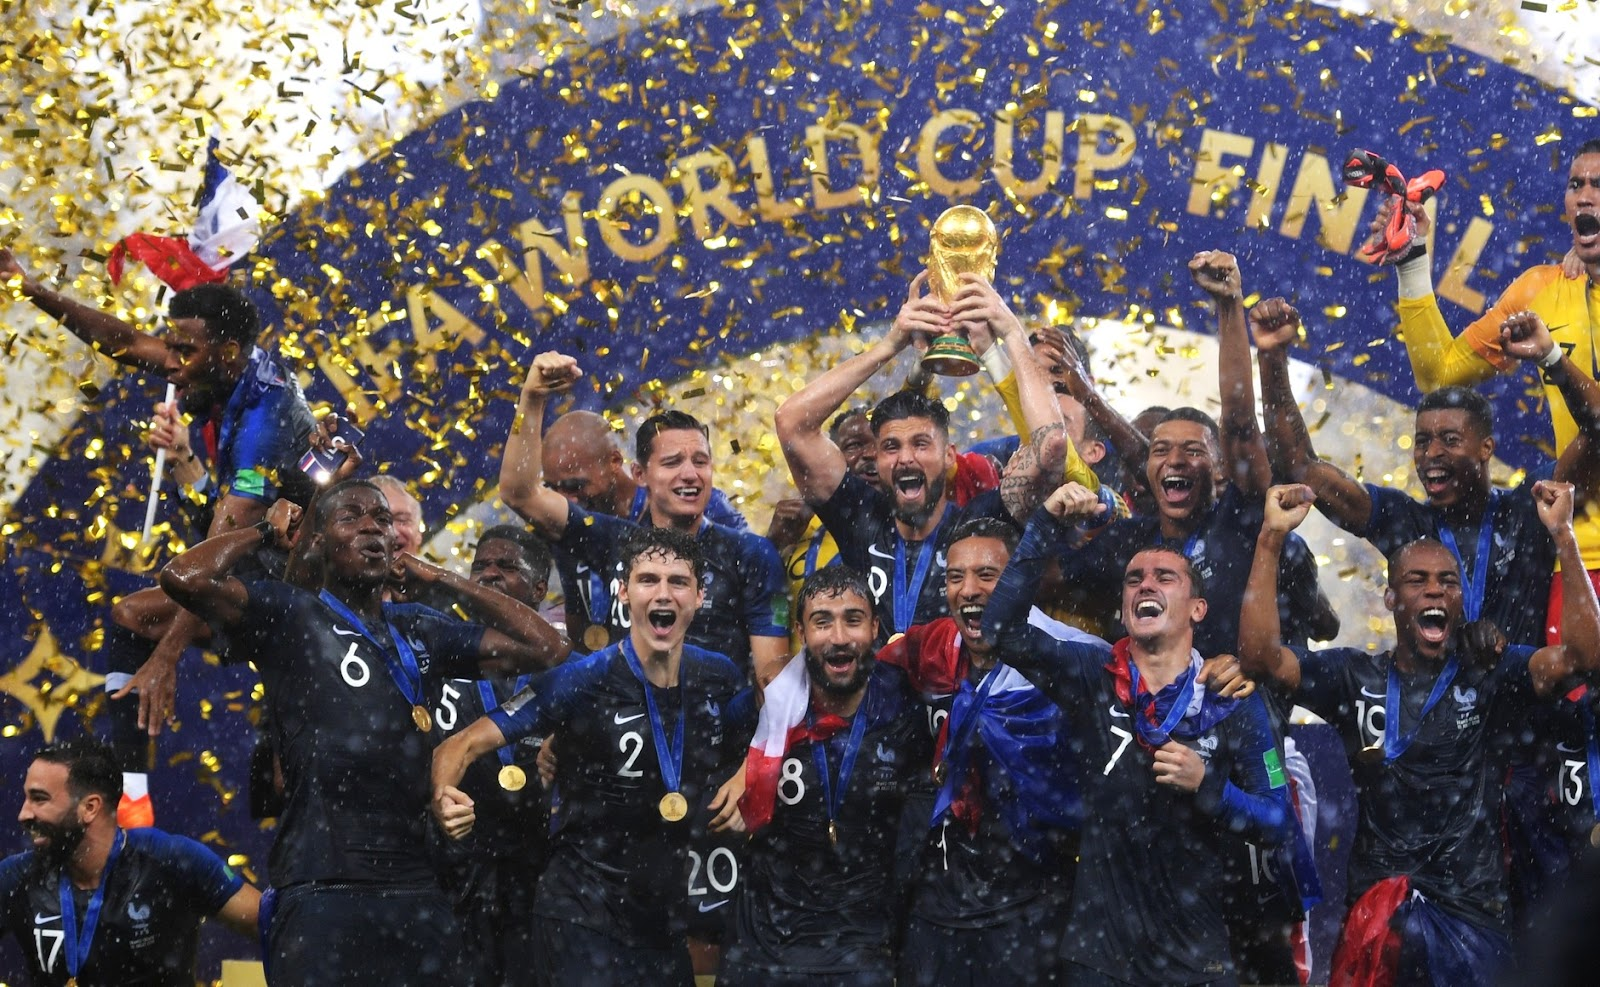 France celebrating the 2018 World Cup (where is soccer most popular?)